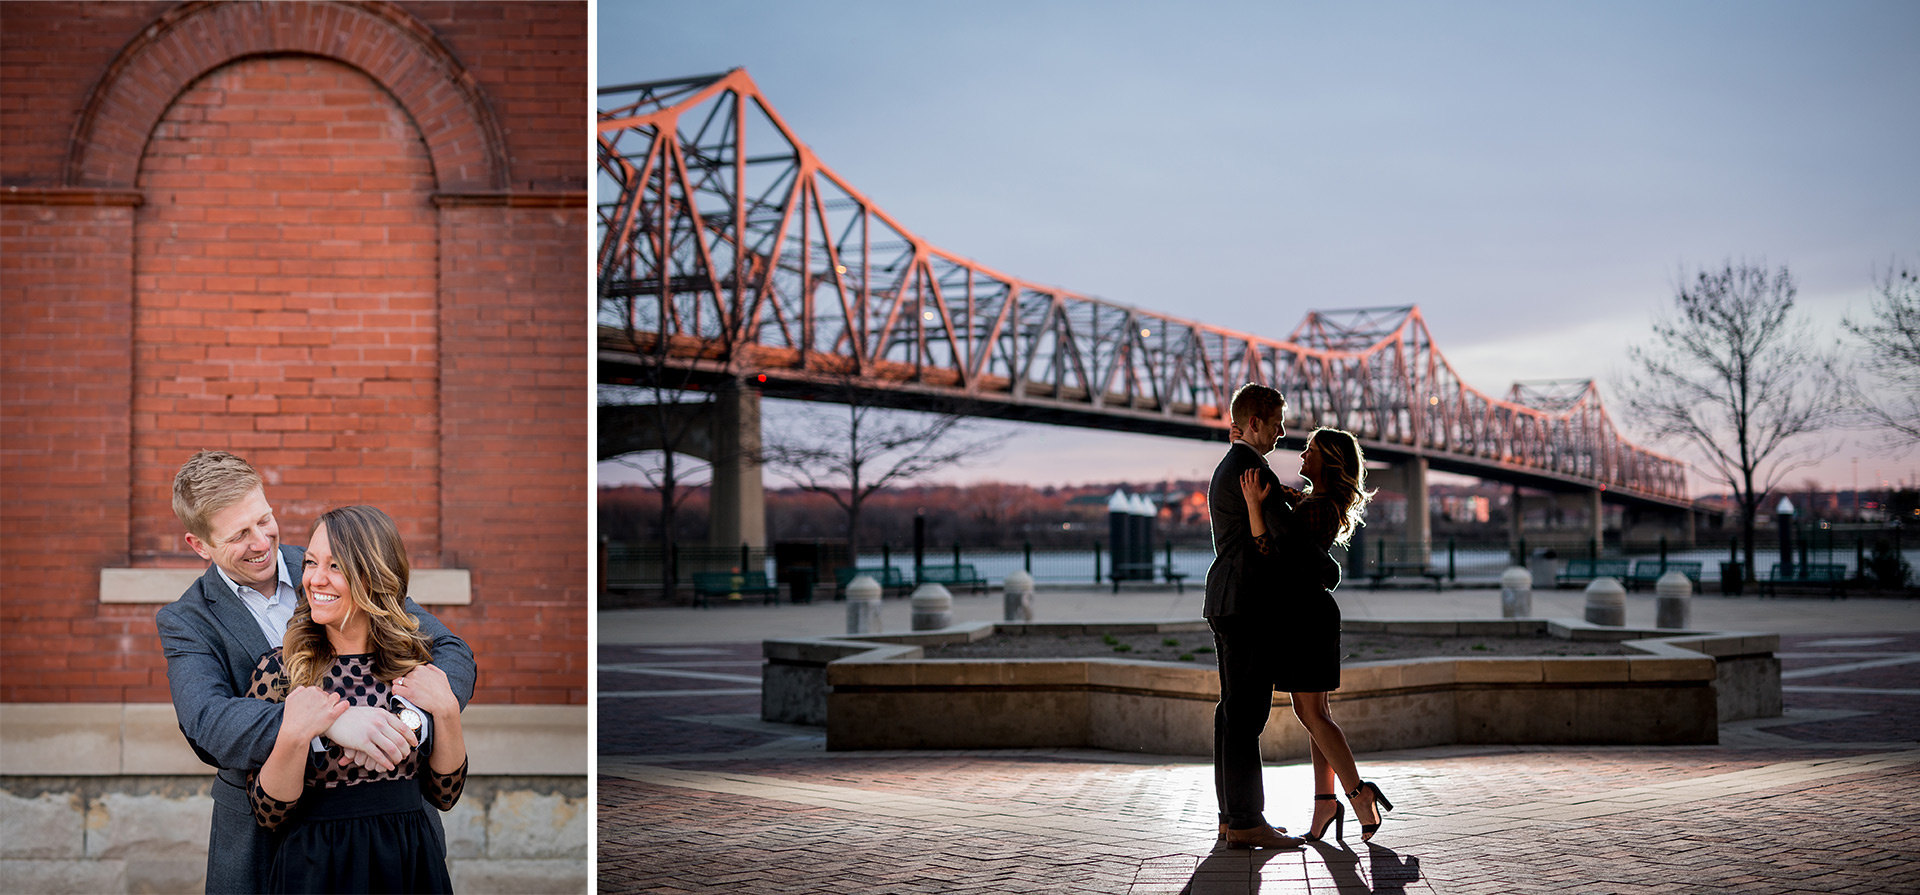 lane-engaged-1-peoria-riverfront-peoria-central-illinois-bloomington-normal-wedding-engagement-photographer-photographers-photography.jpg